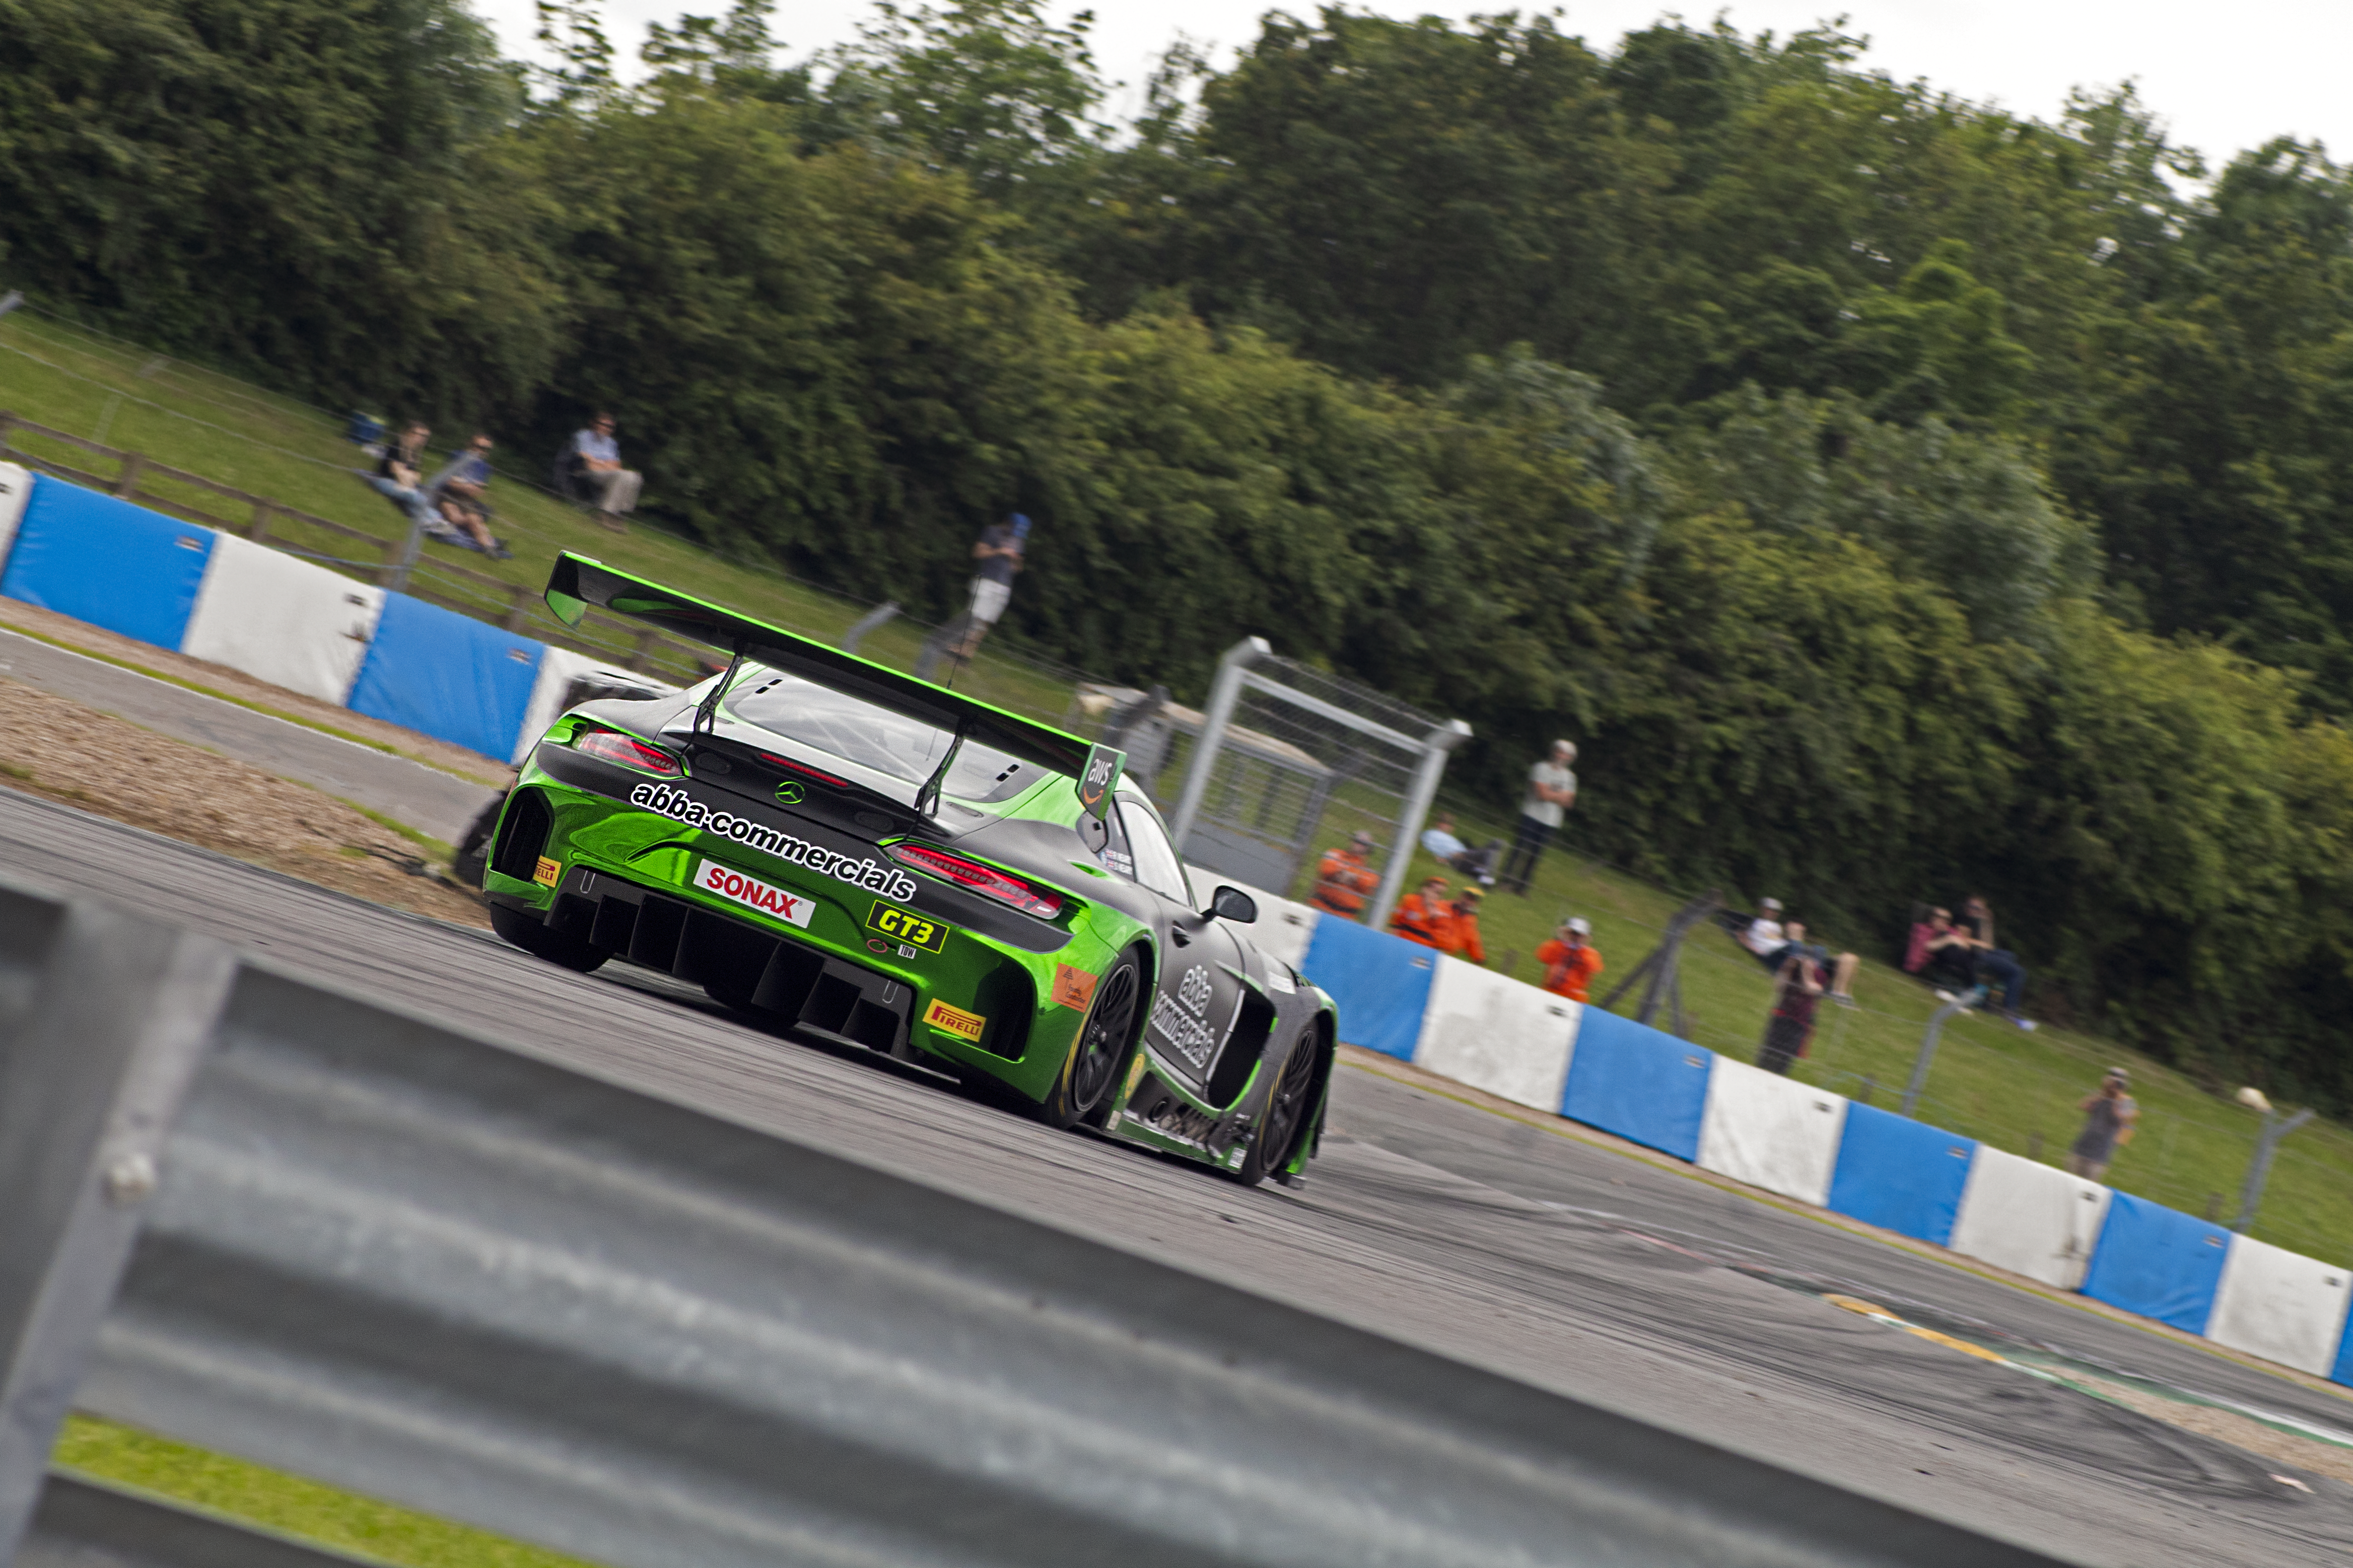 Sam Neary sends his Mercedes-AMG GT3 into the Esses.